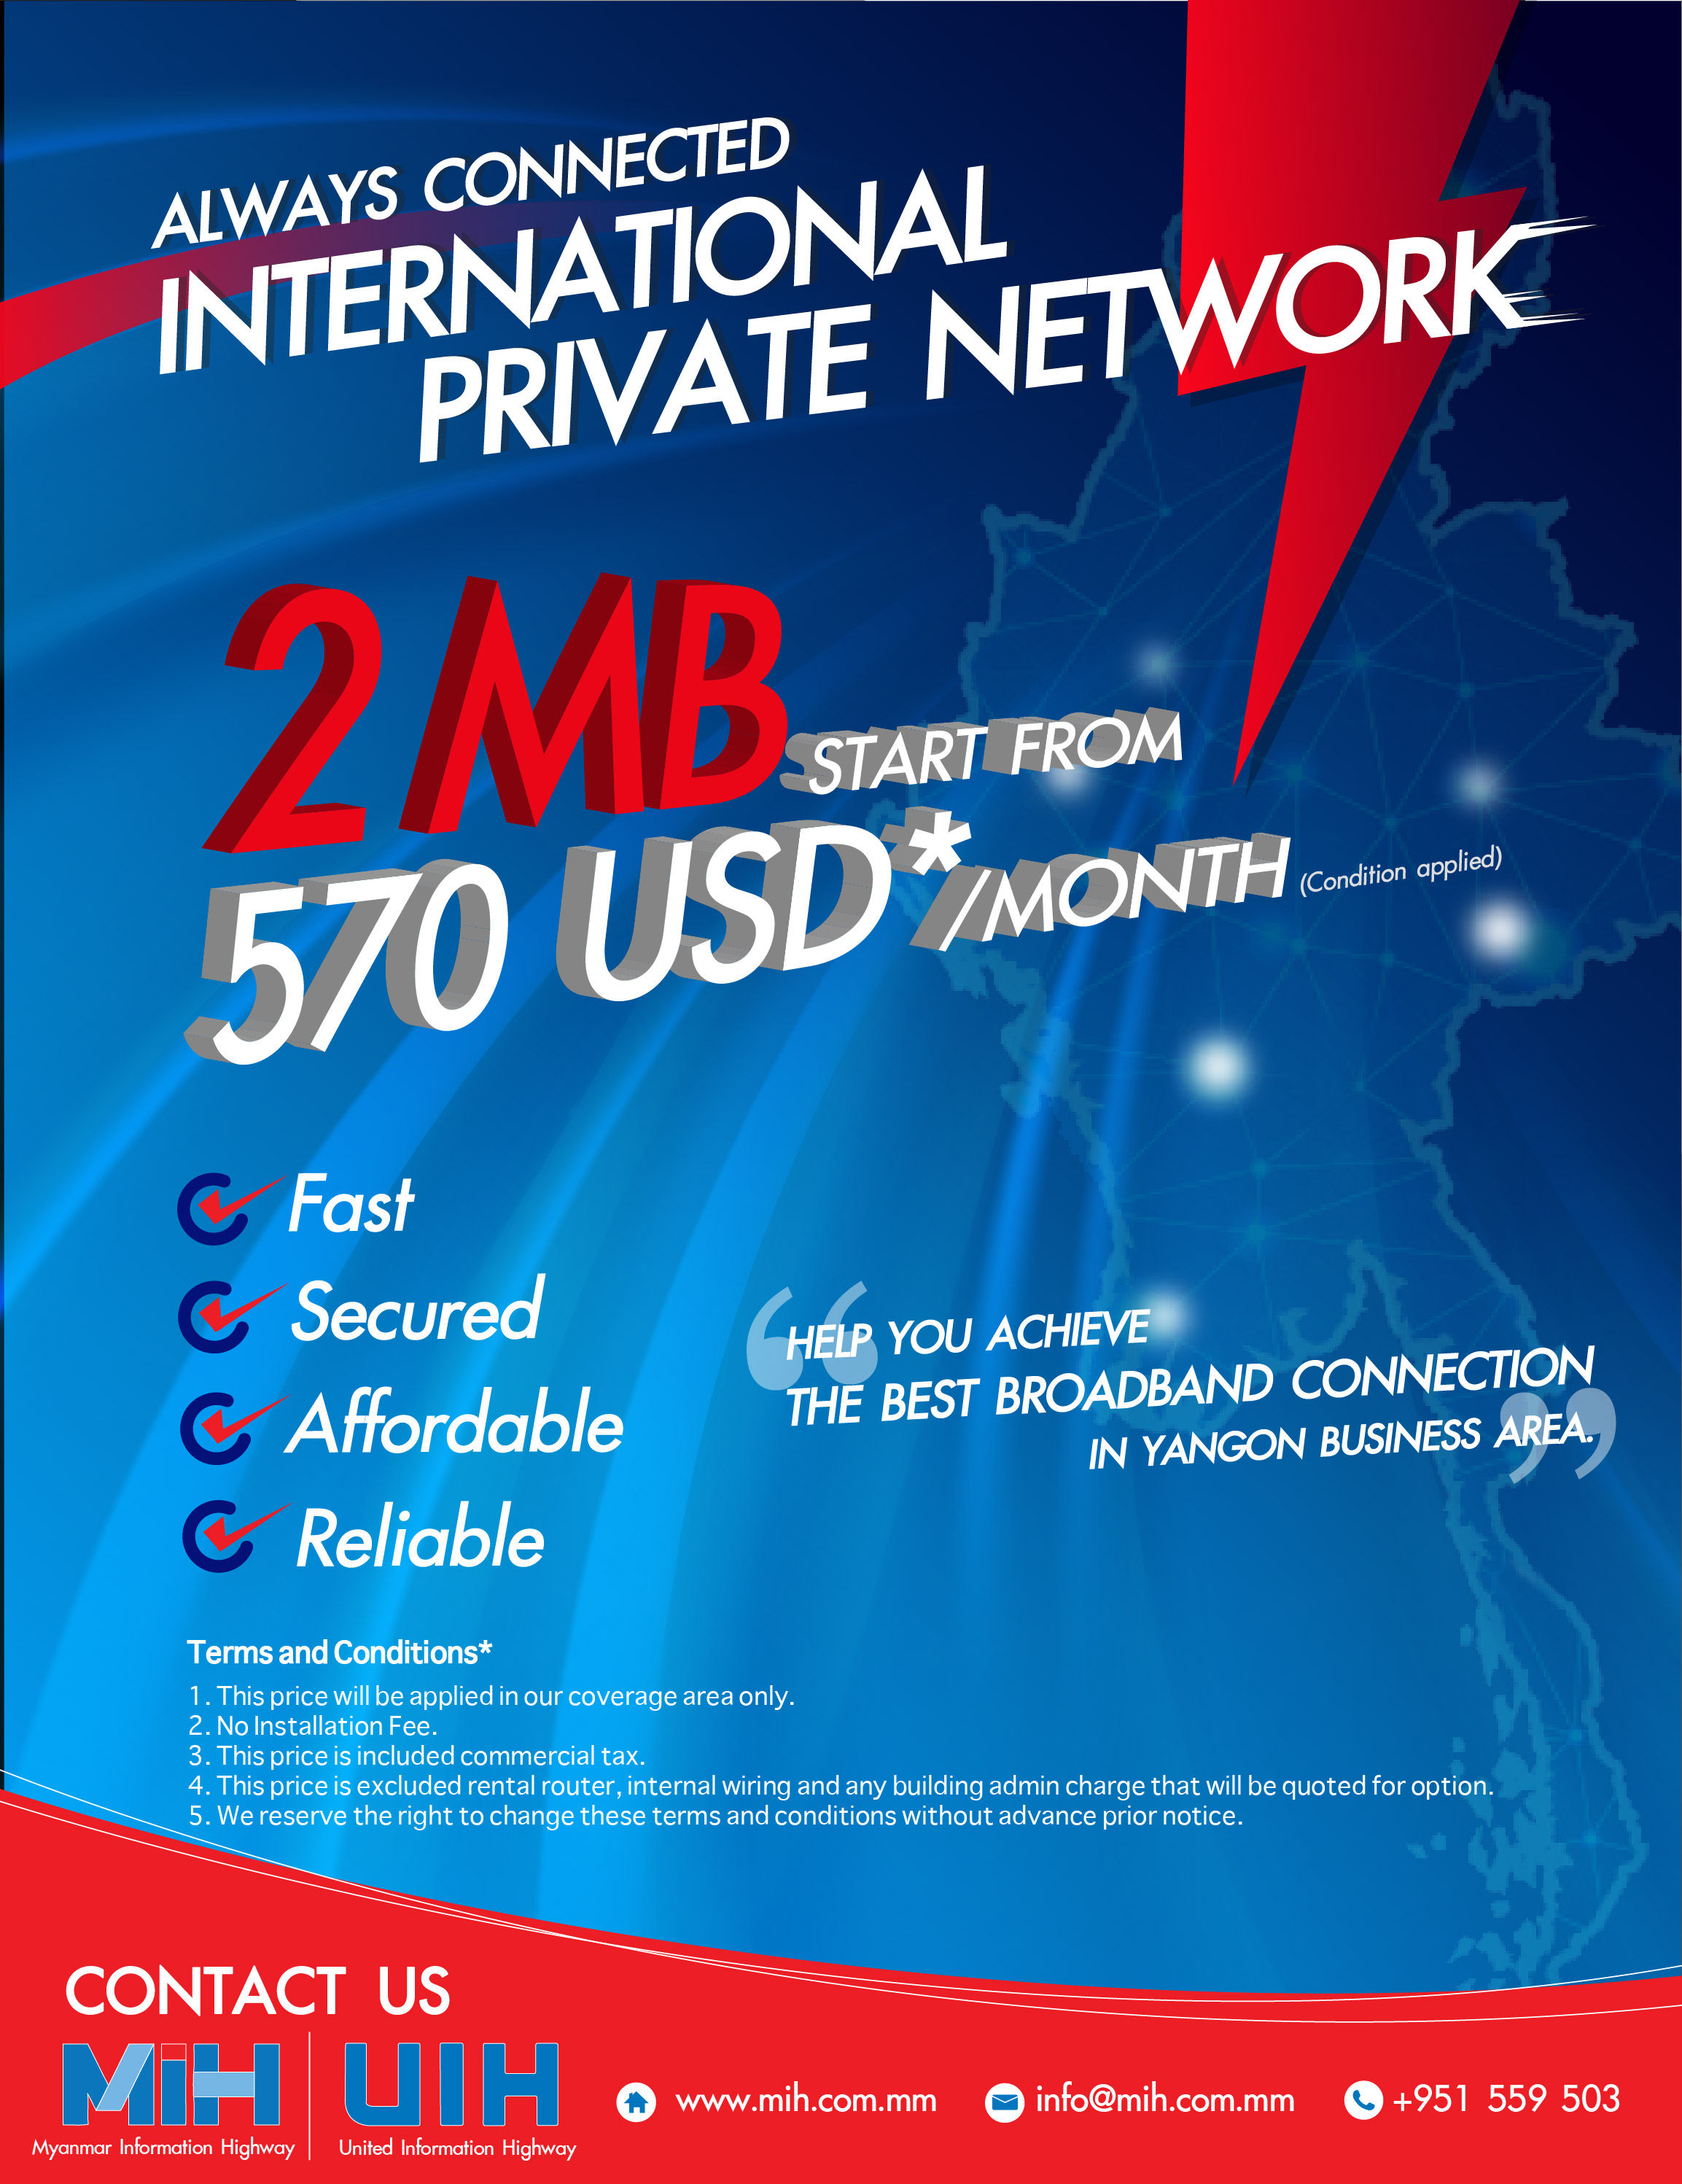 promation-international-private-network-mih.jpg